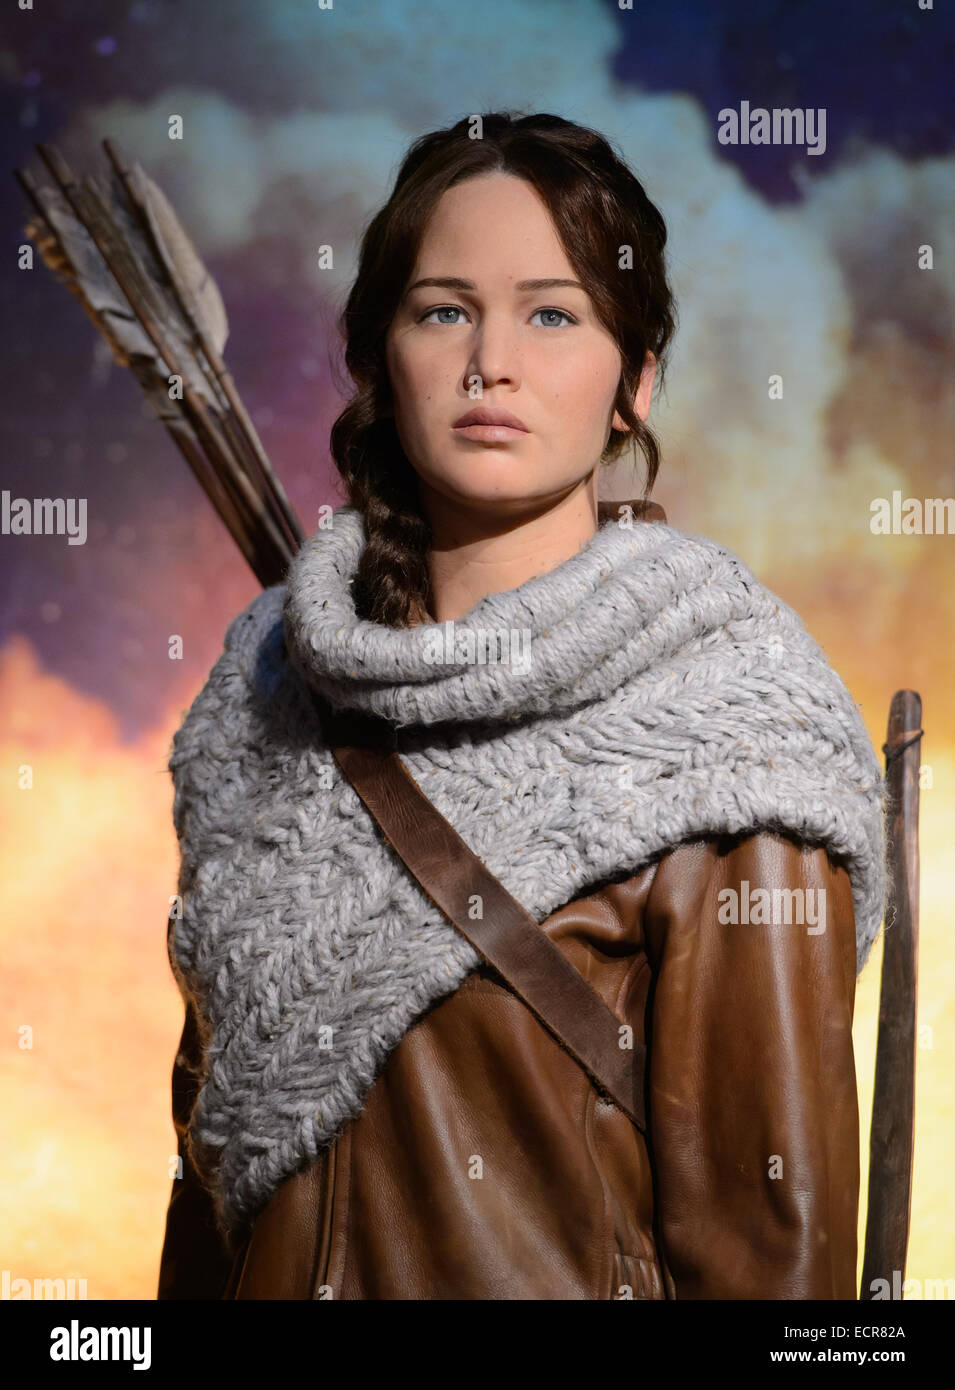 Madame Tussauds London today revealed its newest figure, Katniss Everdeen, played by Jennifer Lawrence. - Stock Image